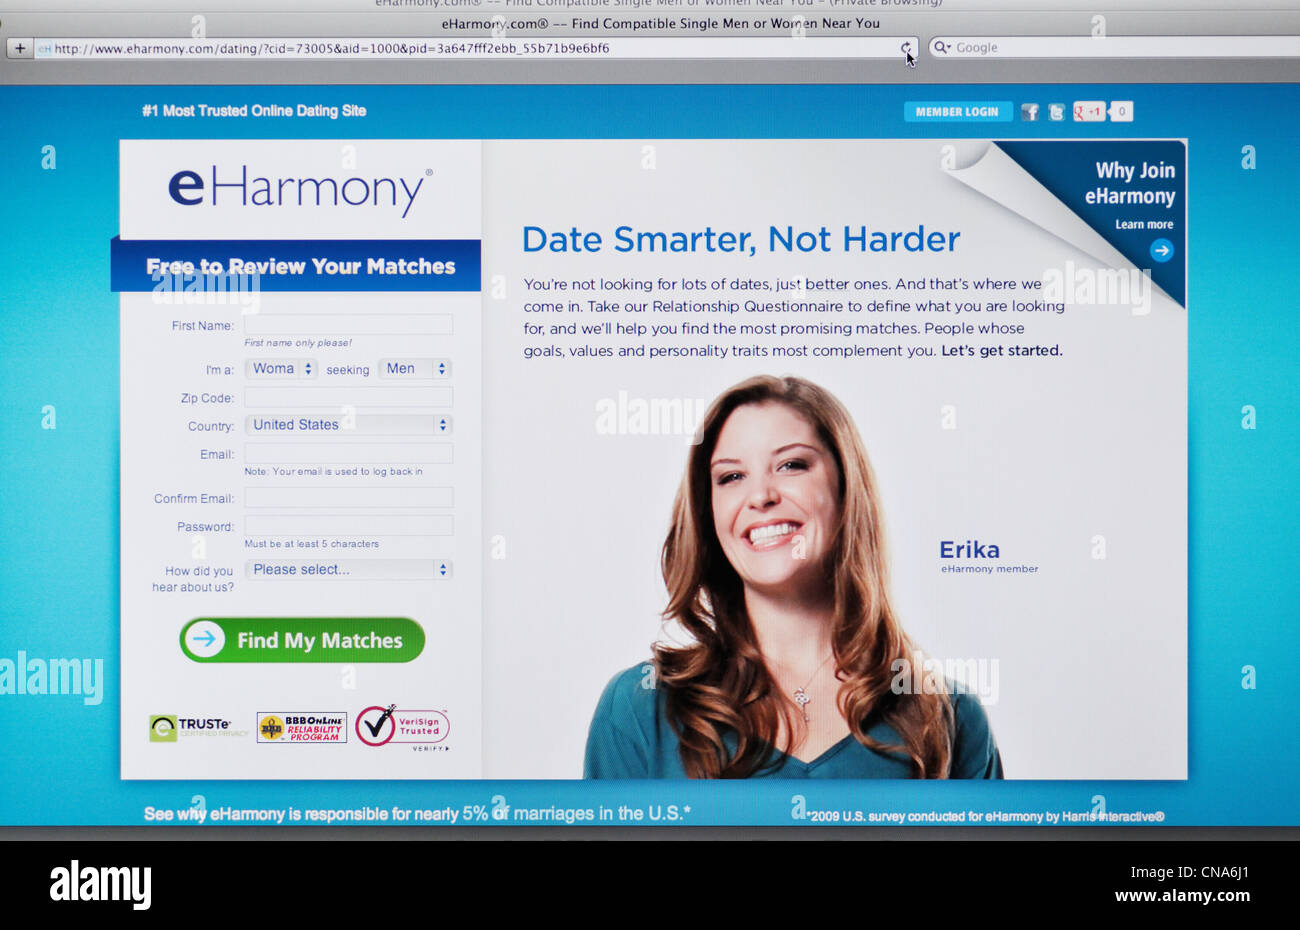 eharmony dating site login Some eharmony users have reported that there are scammers on the site trying to take financial advantage of single men and women it seems all dating sites — not just eharmony — are unfortunately struggling with this problem lately, so it's something to be aware of going in.